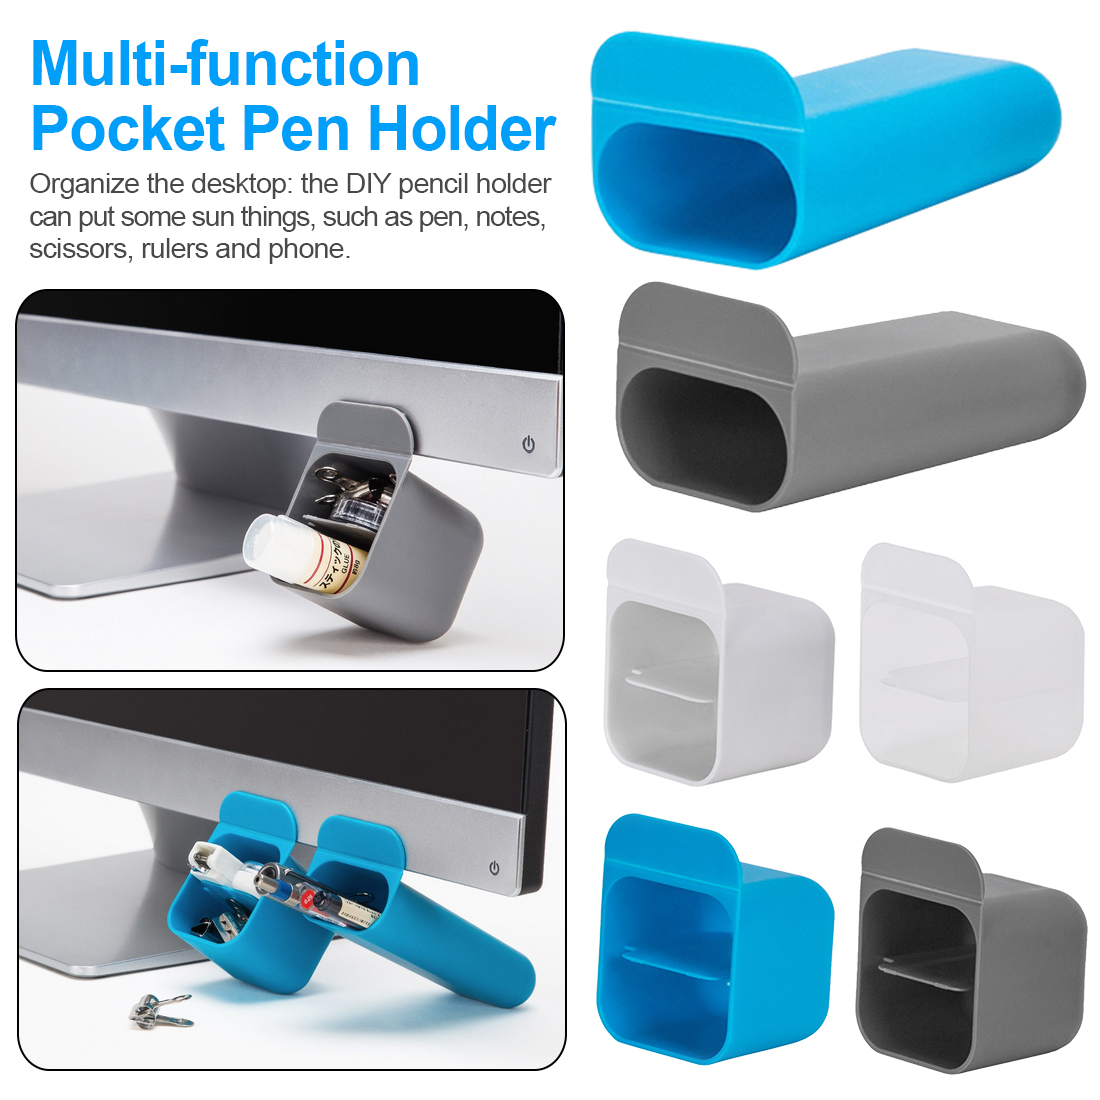 Multi Functional Desktop Display Pocket Pen Holder Desk Stationery Pen Receipt Box